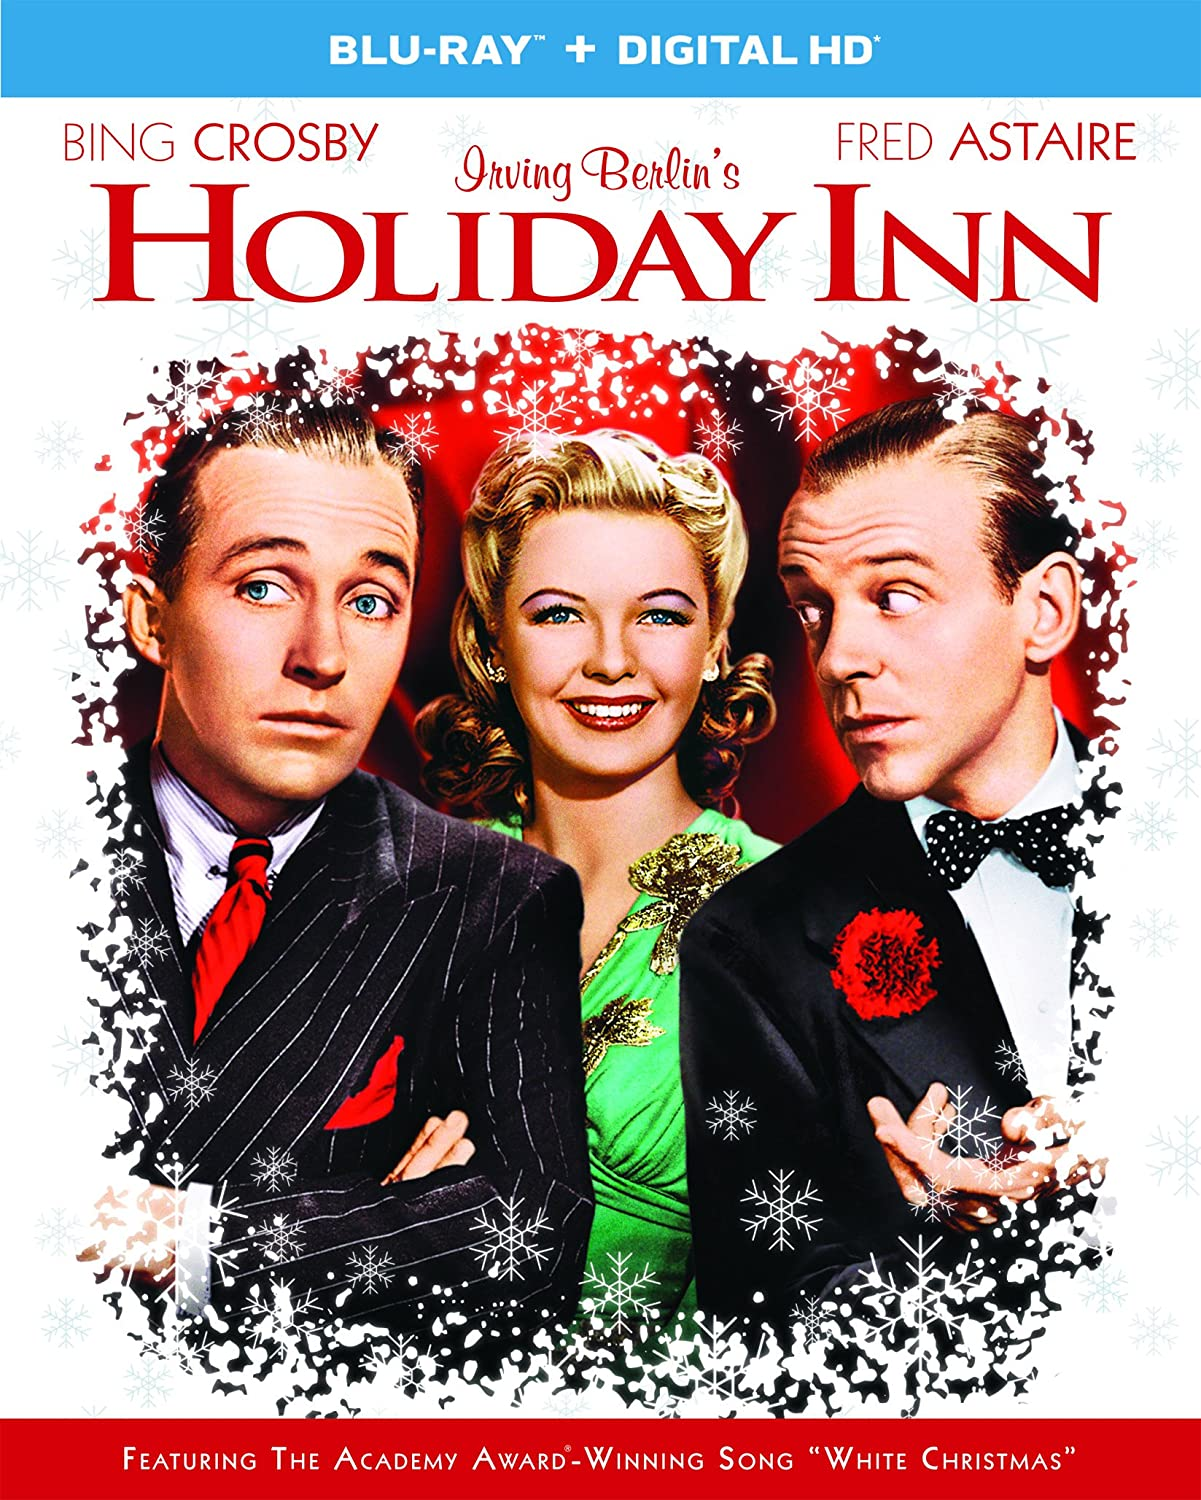 Amazon.com: Holiday Inn [Blu-ray]: Bing Crosby, Fred Astaire ...